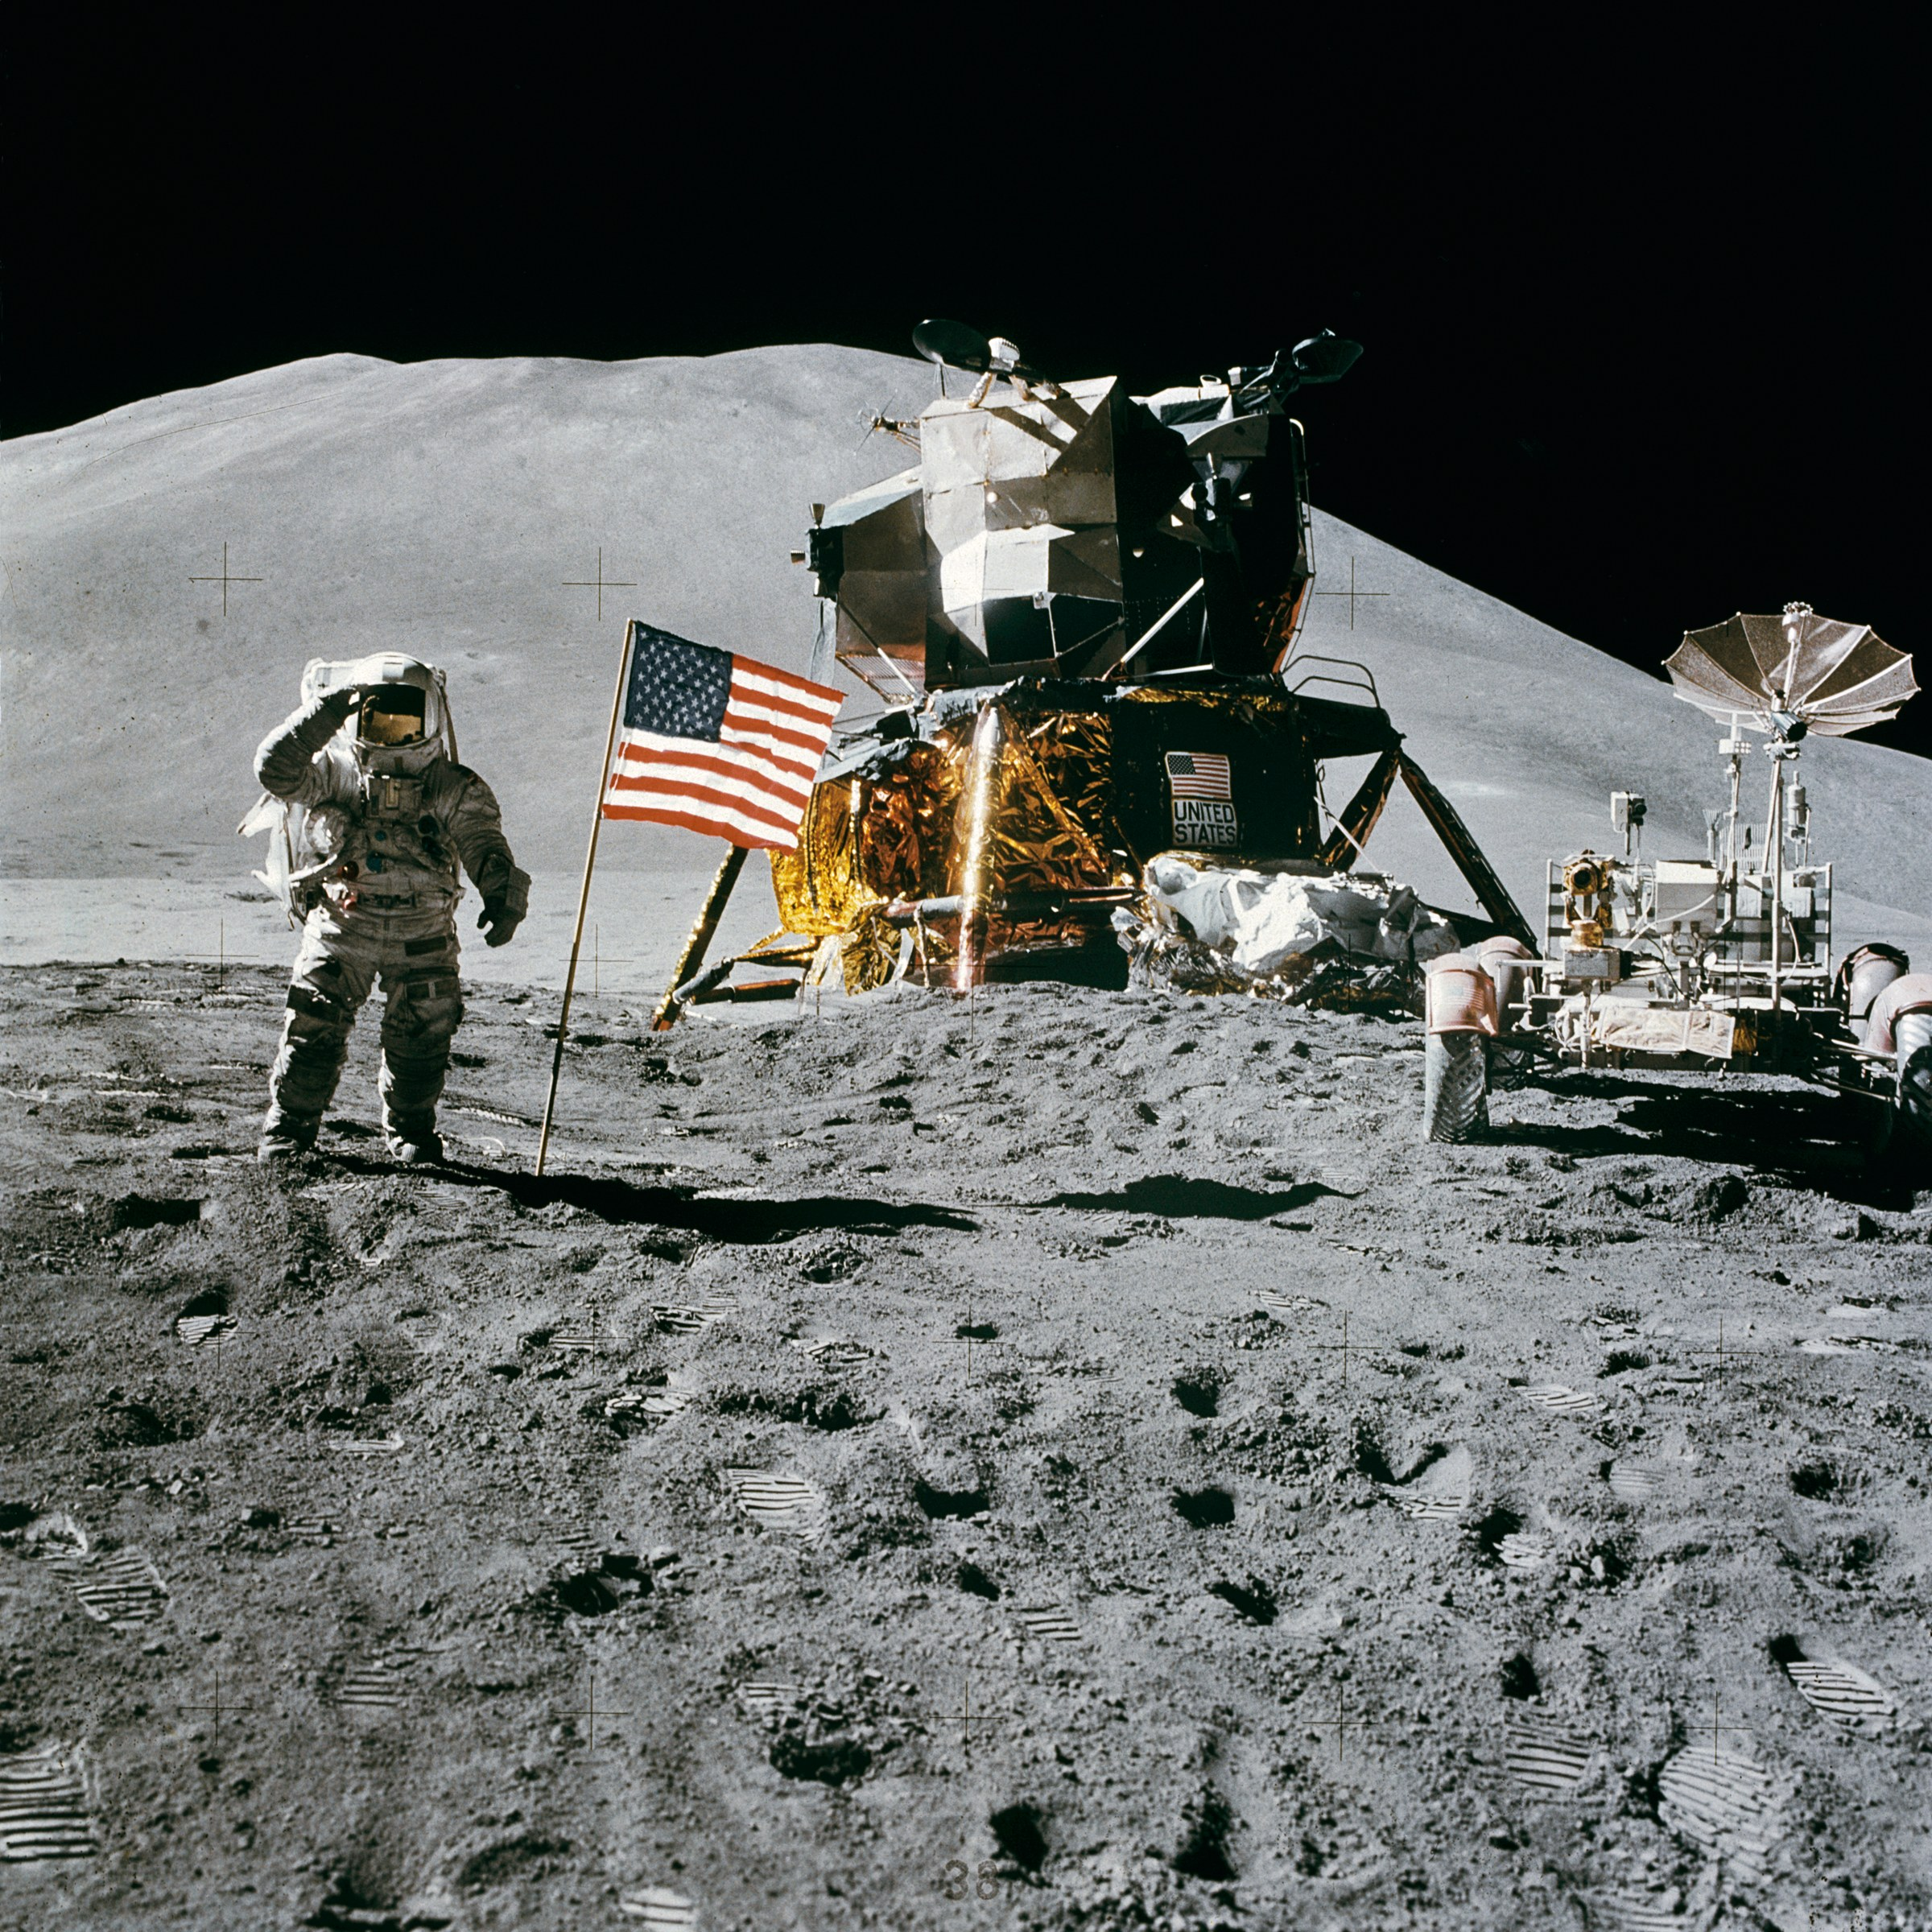 apollo 11 mission landing on the moon - photo #18